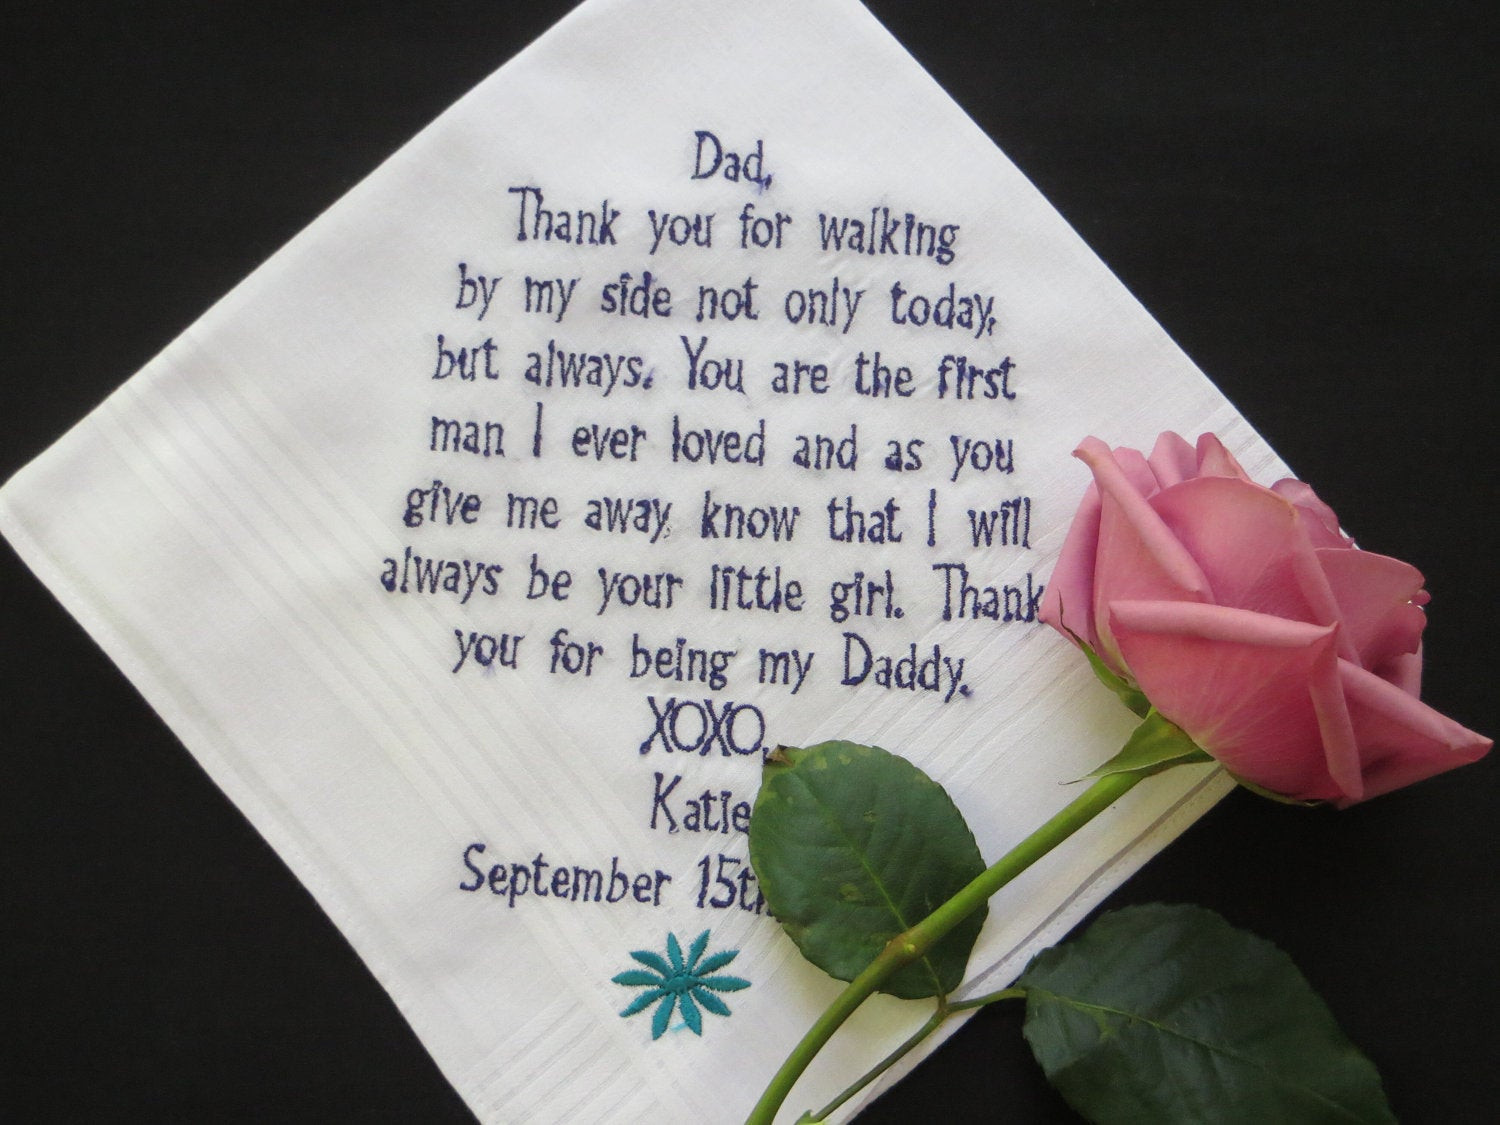 Thank You Gift Ideas For Parents  7 Great Thank You Gift Ideas for your Parents on your